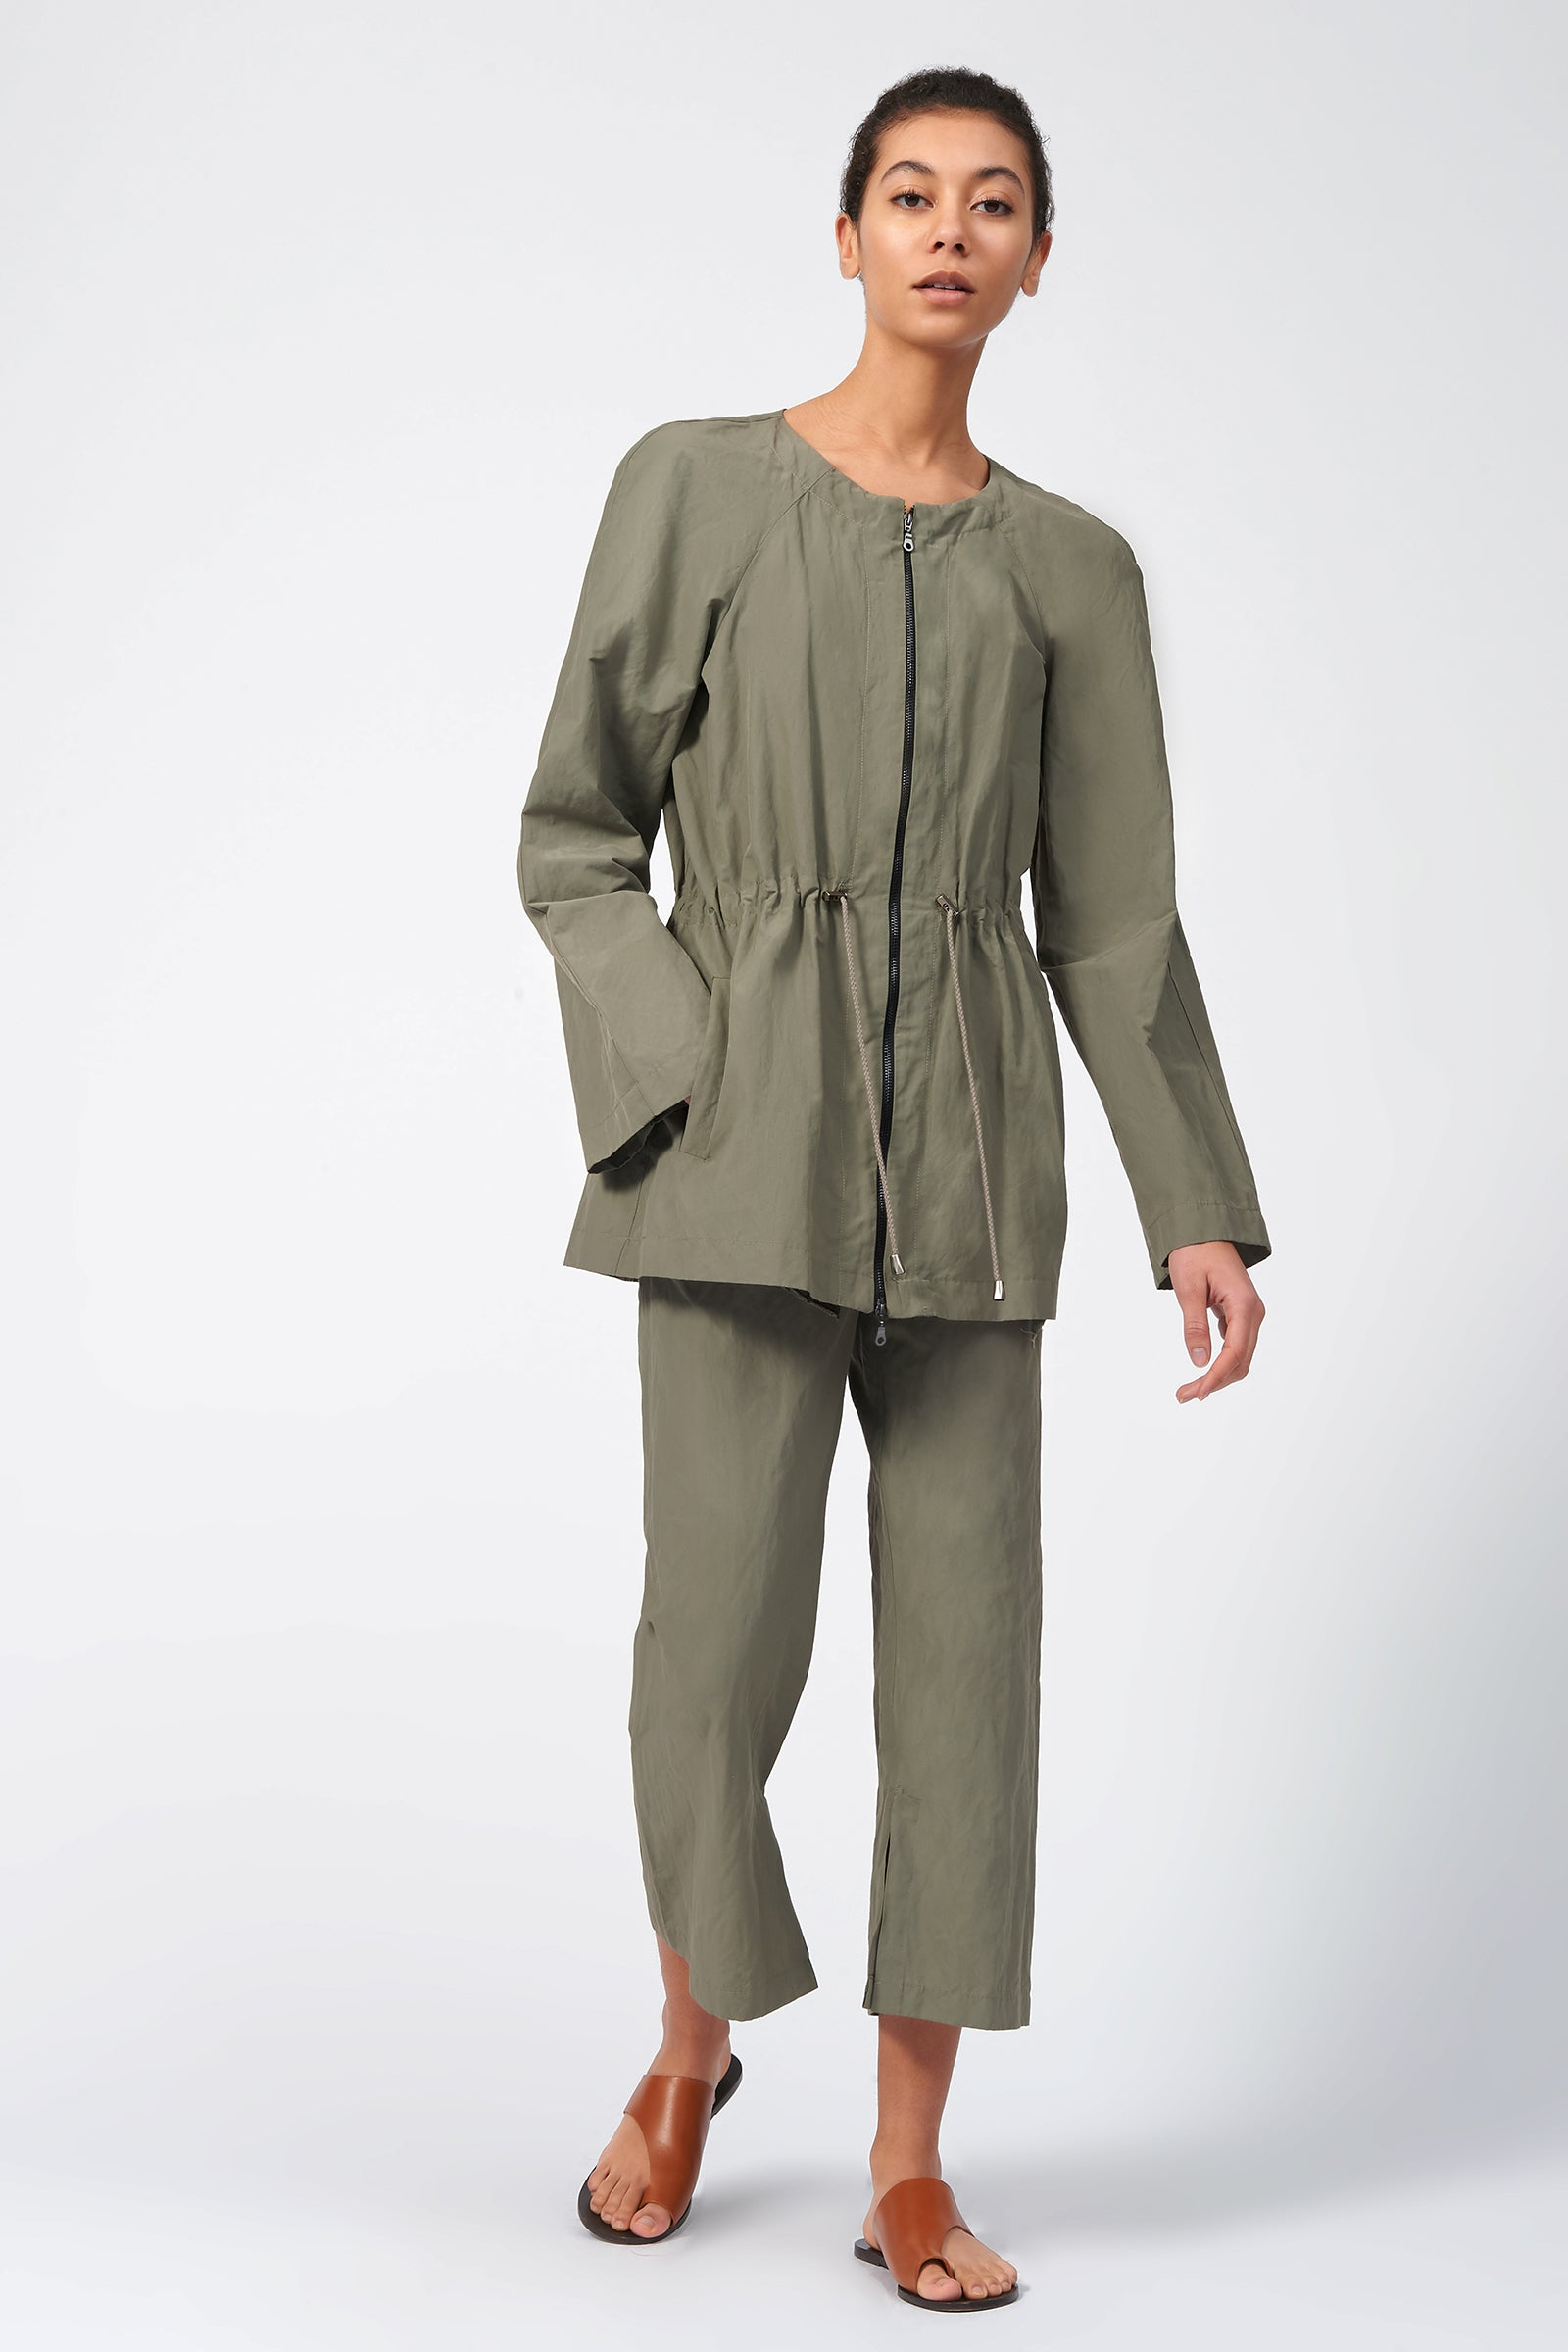 Kal Rieman Cotton Nylon Cinch Jacket in Olive on Model Front View